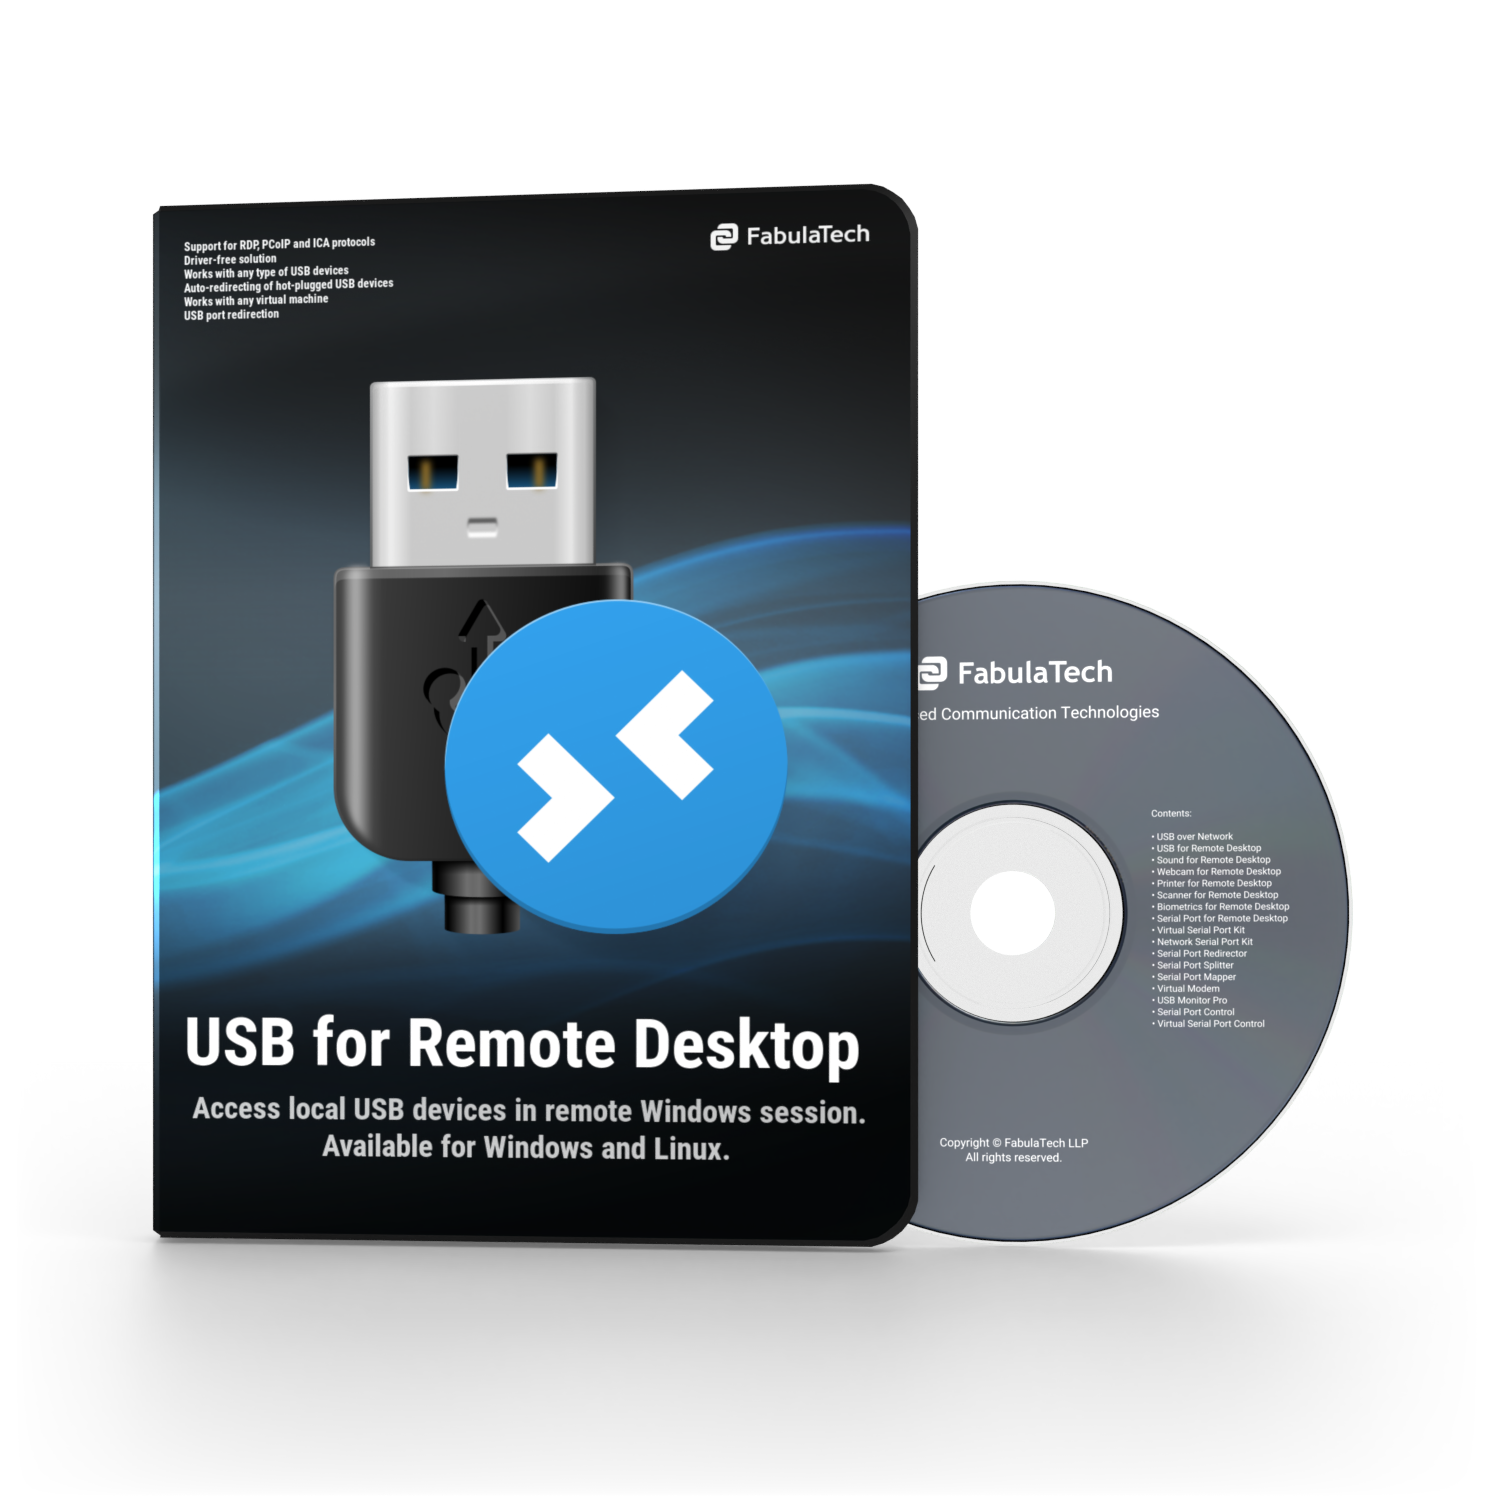 USB for Remote Desktop Box and CD PNG 750x750